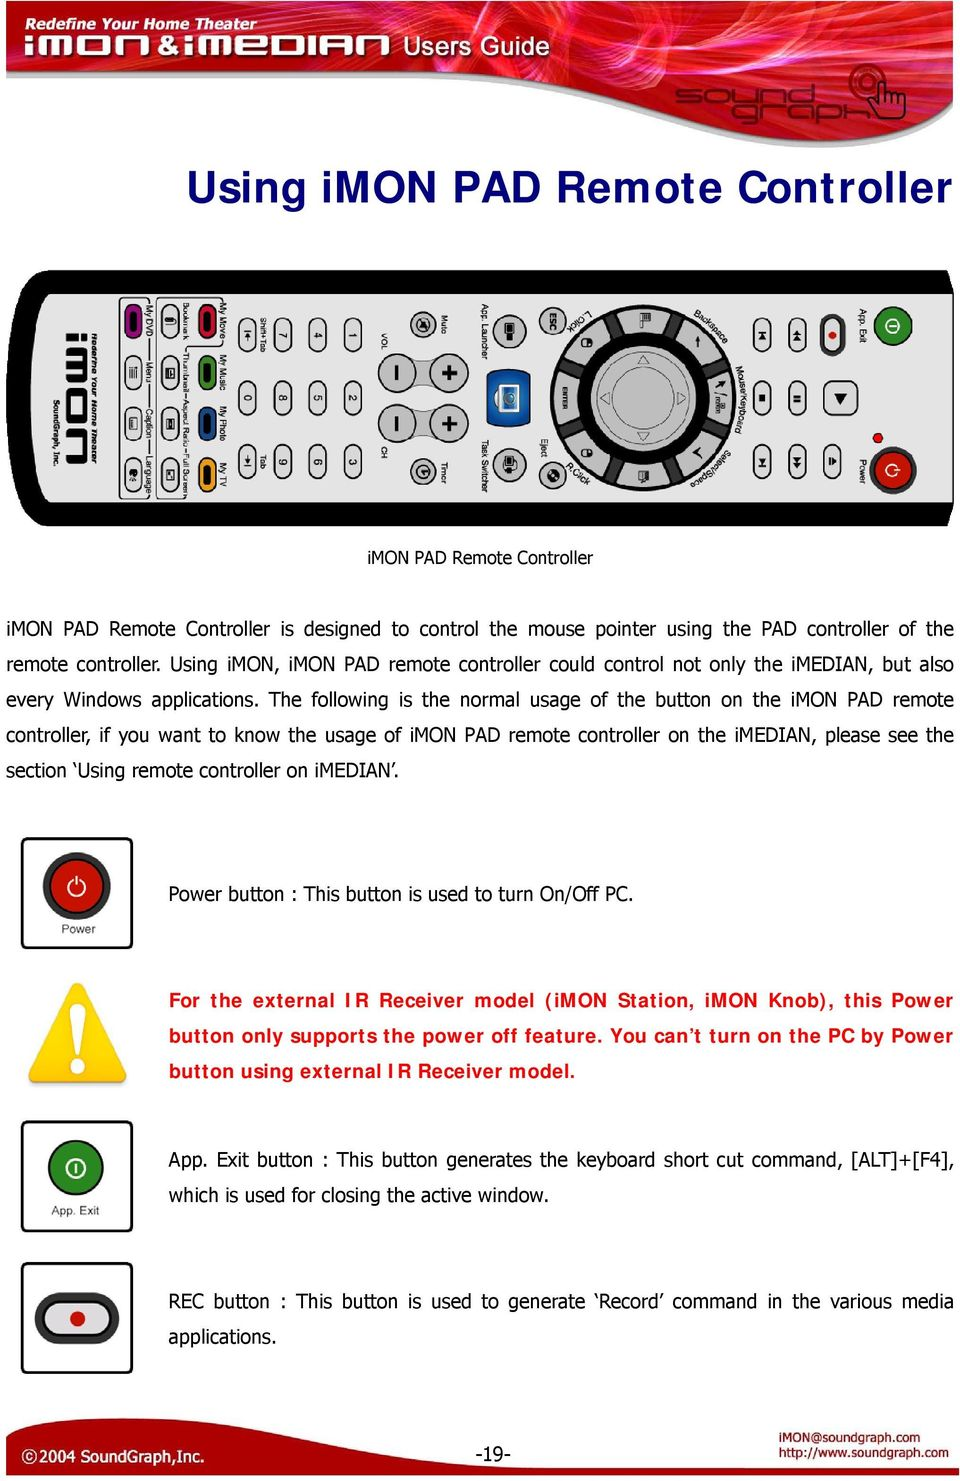 The following is the normal usage of the button on the imon PAD remote controller, if you want to know the usage of imon PAD remote controller on the imedian, please see the section Using remote